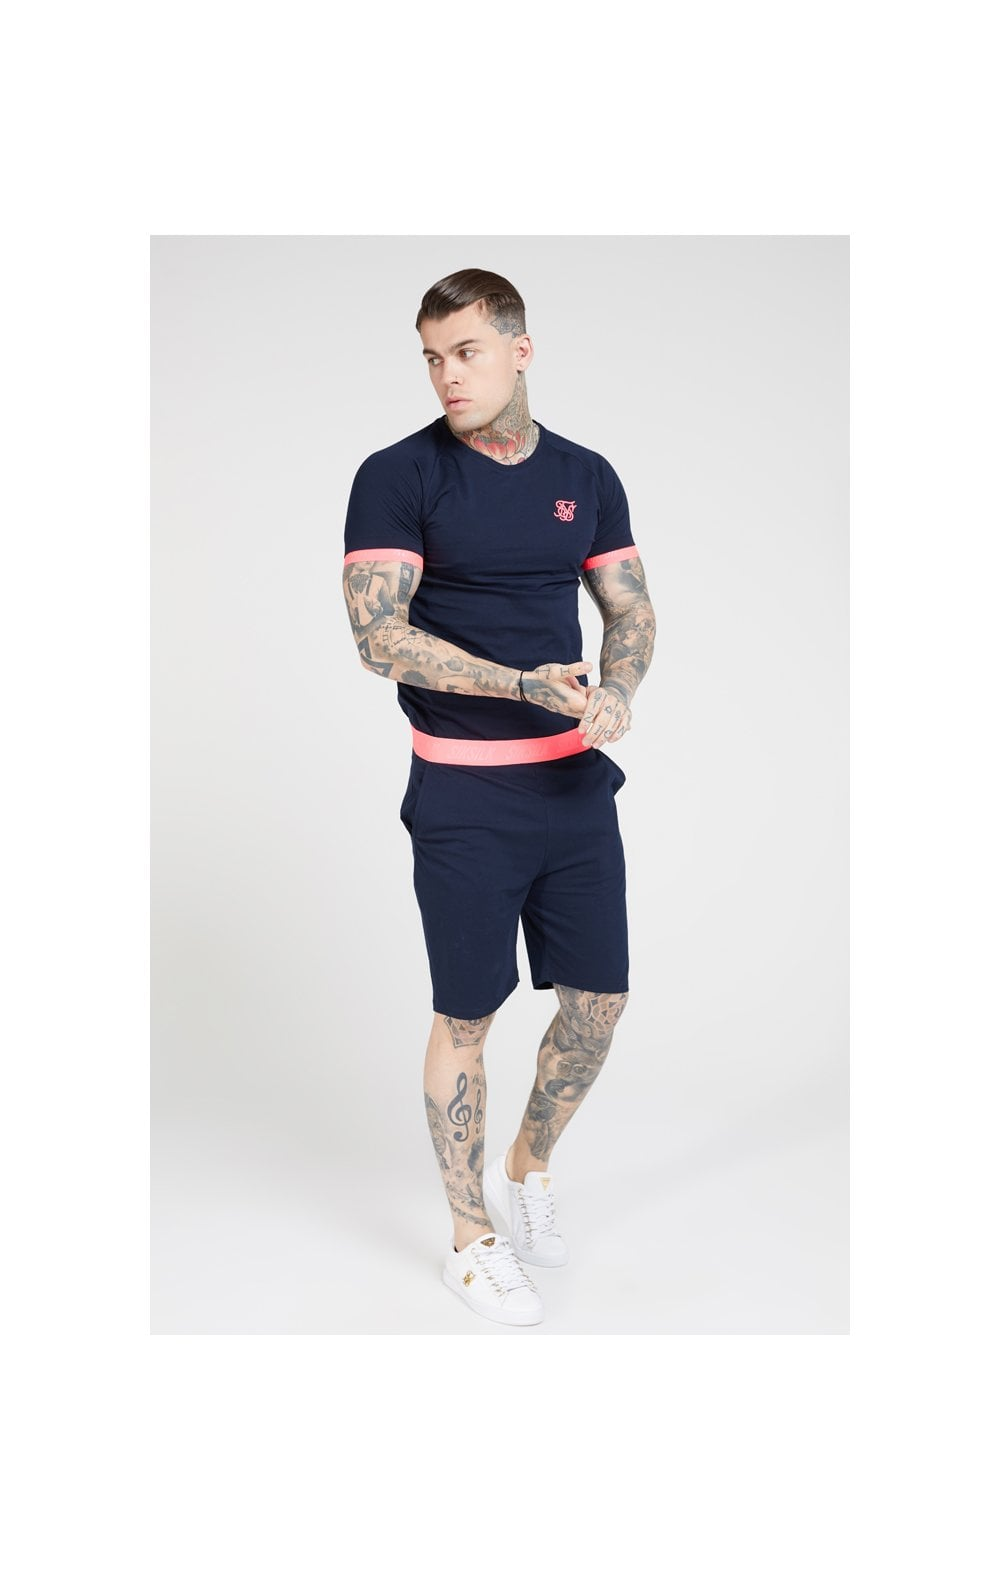 Load image into Gallery viewer, SikSilk S/S Neon Tech Tee – Navy & Neon Pink (3)